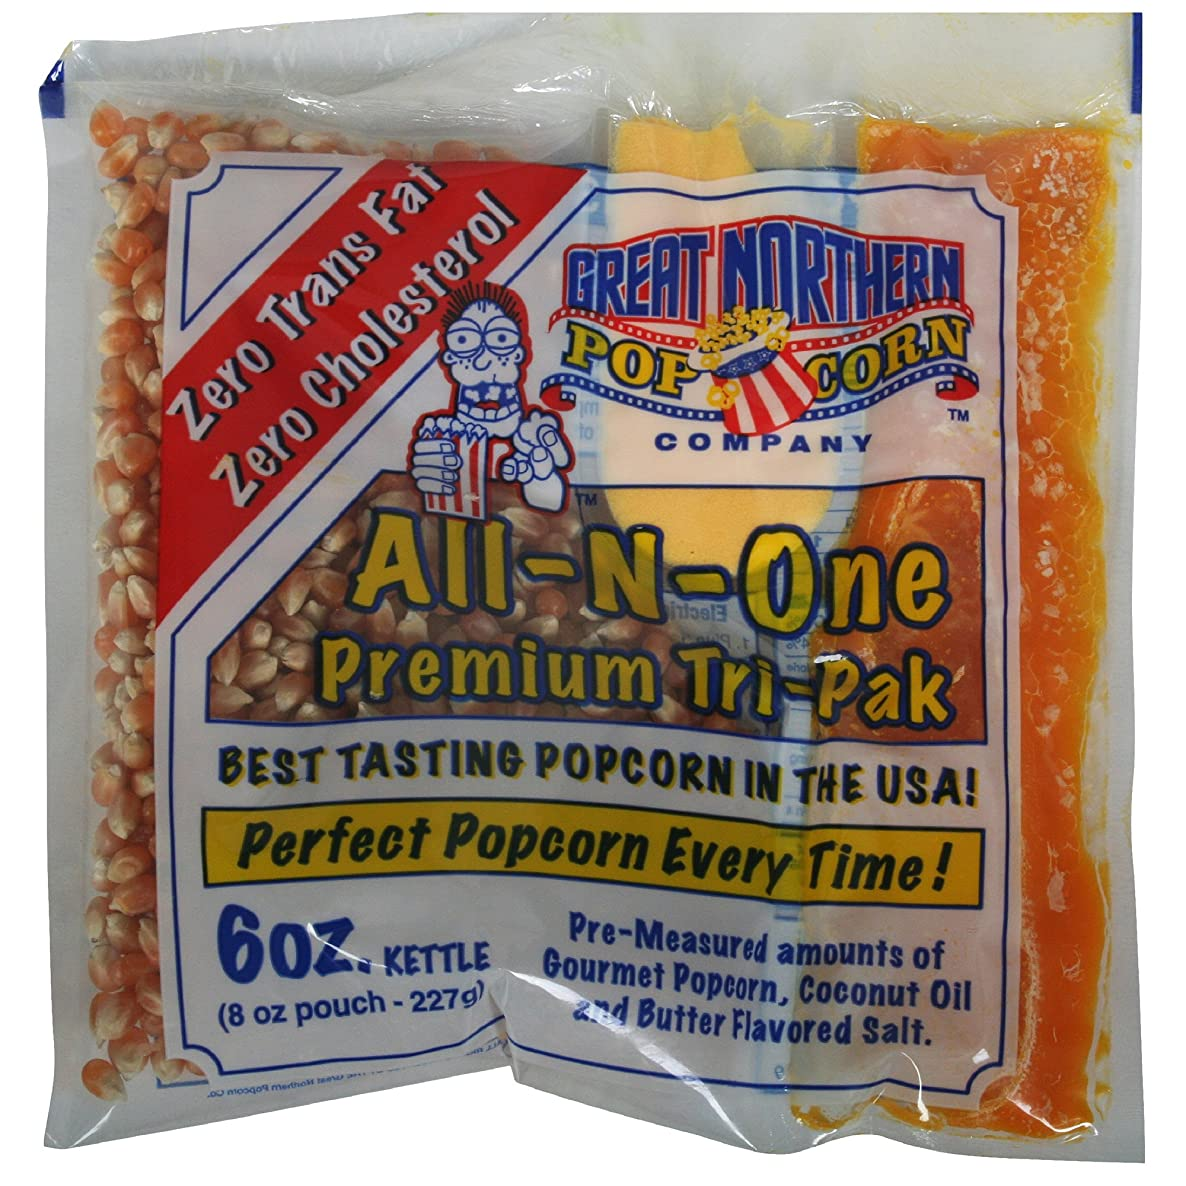 Great Northern Popcorn 1 Case (24) of 6 Ounce Premium Quality Popcorn Portion Packs Kit Cinema